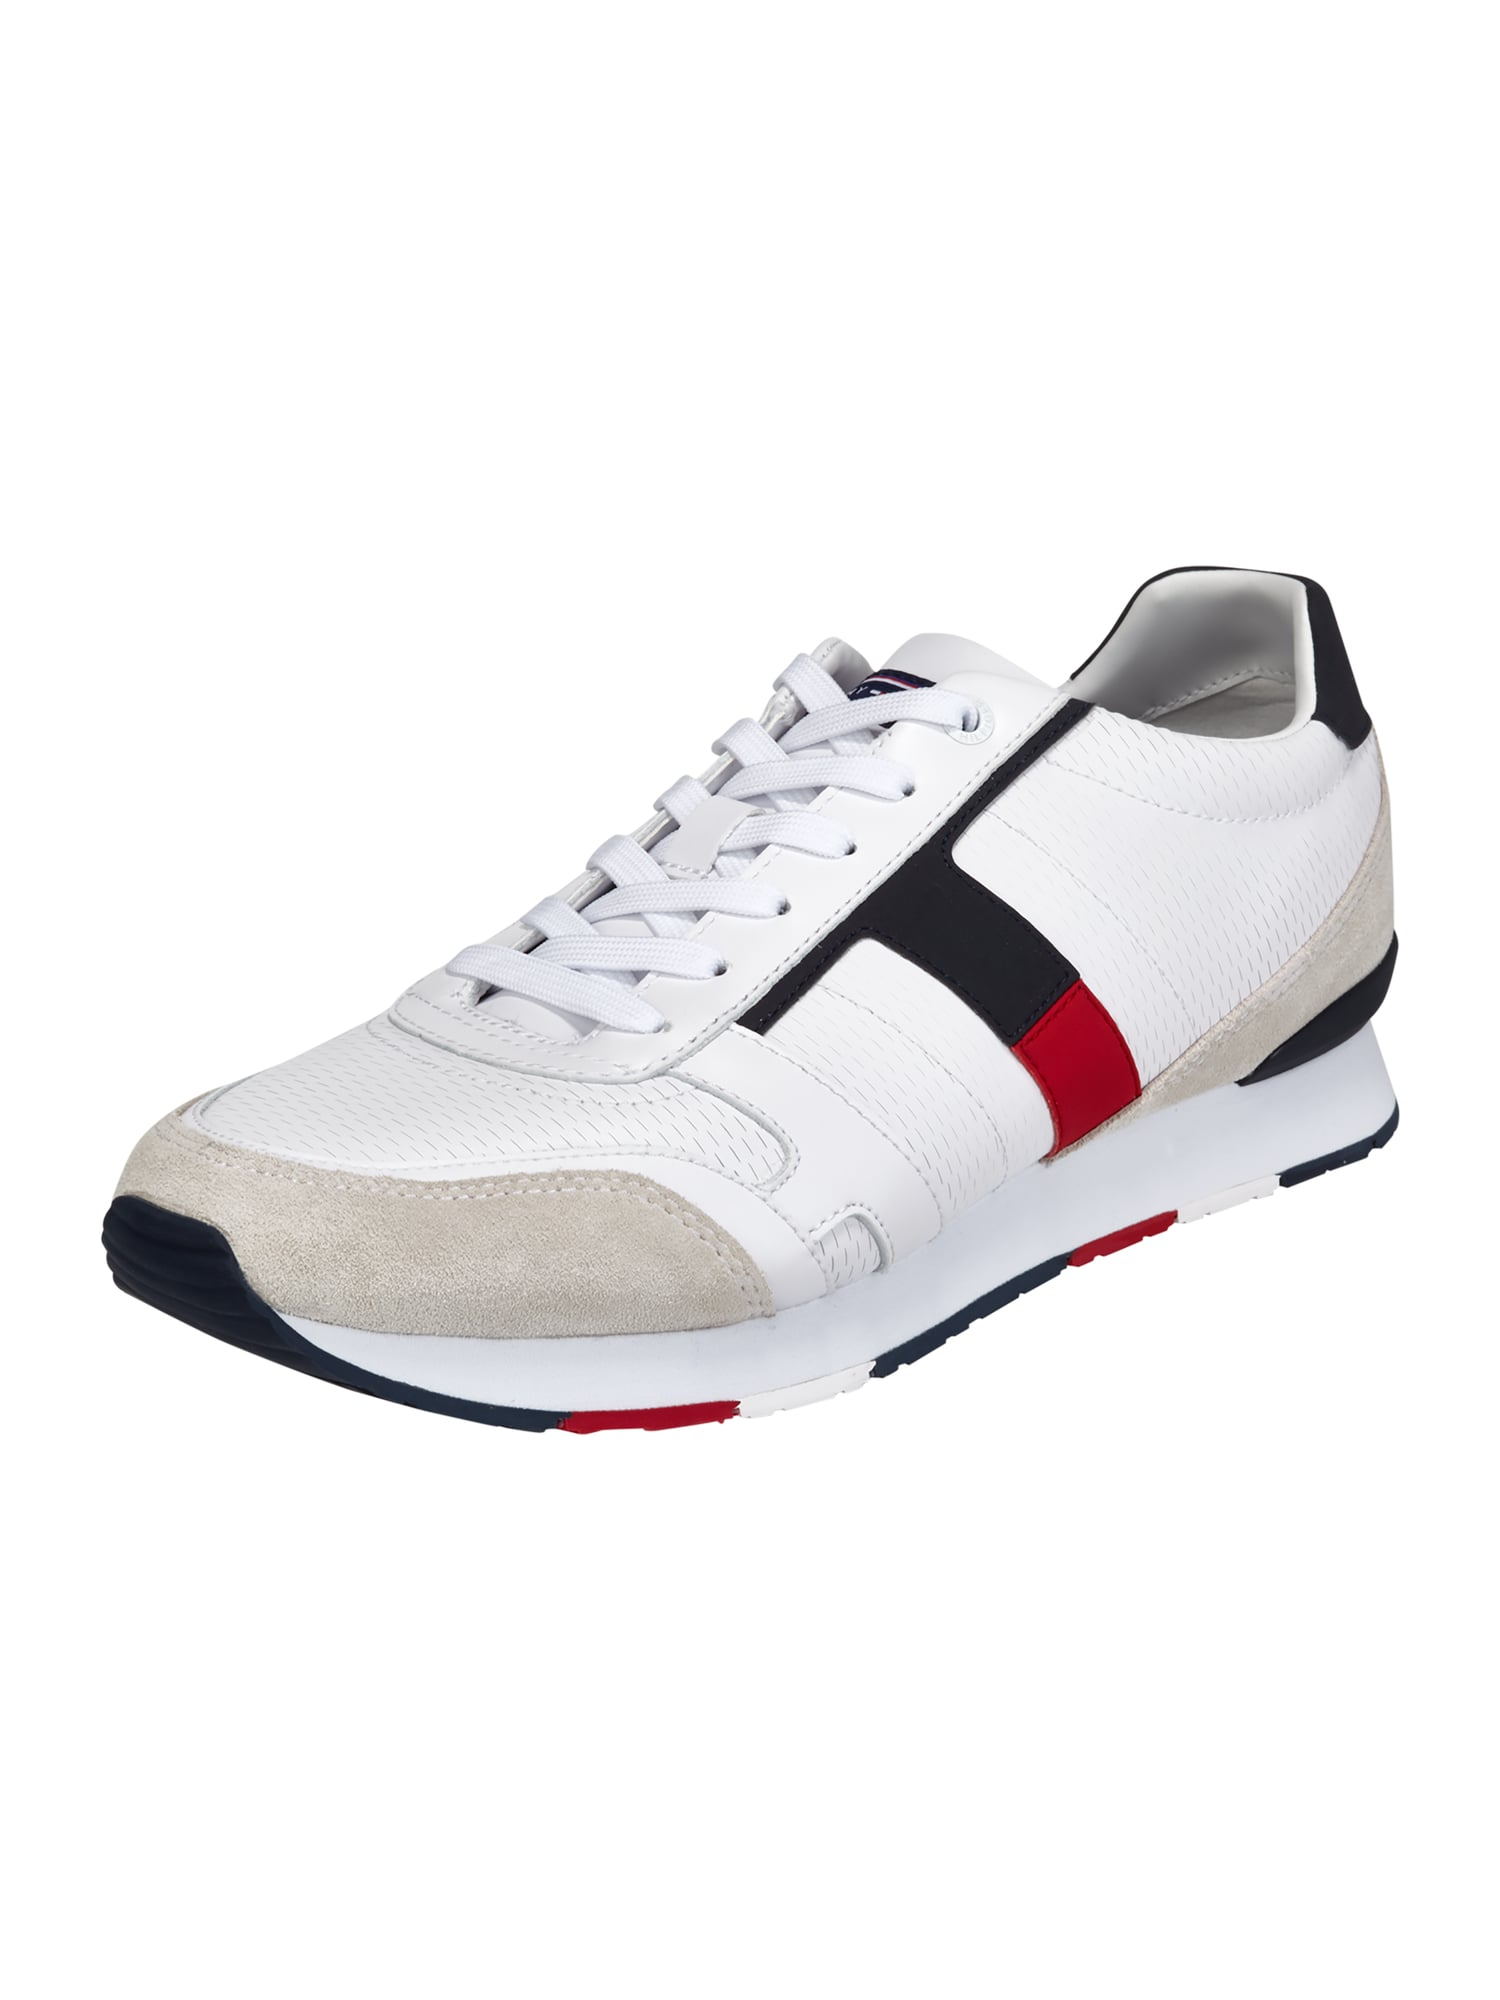 tommy hilfiger sneaker aus leder in wei online kaufen. Black Bedroom Furniture Sets. Home Design Ideas